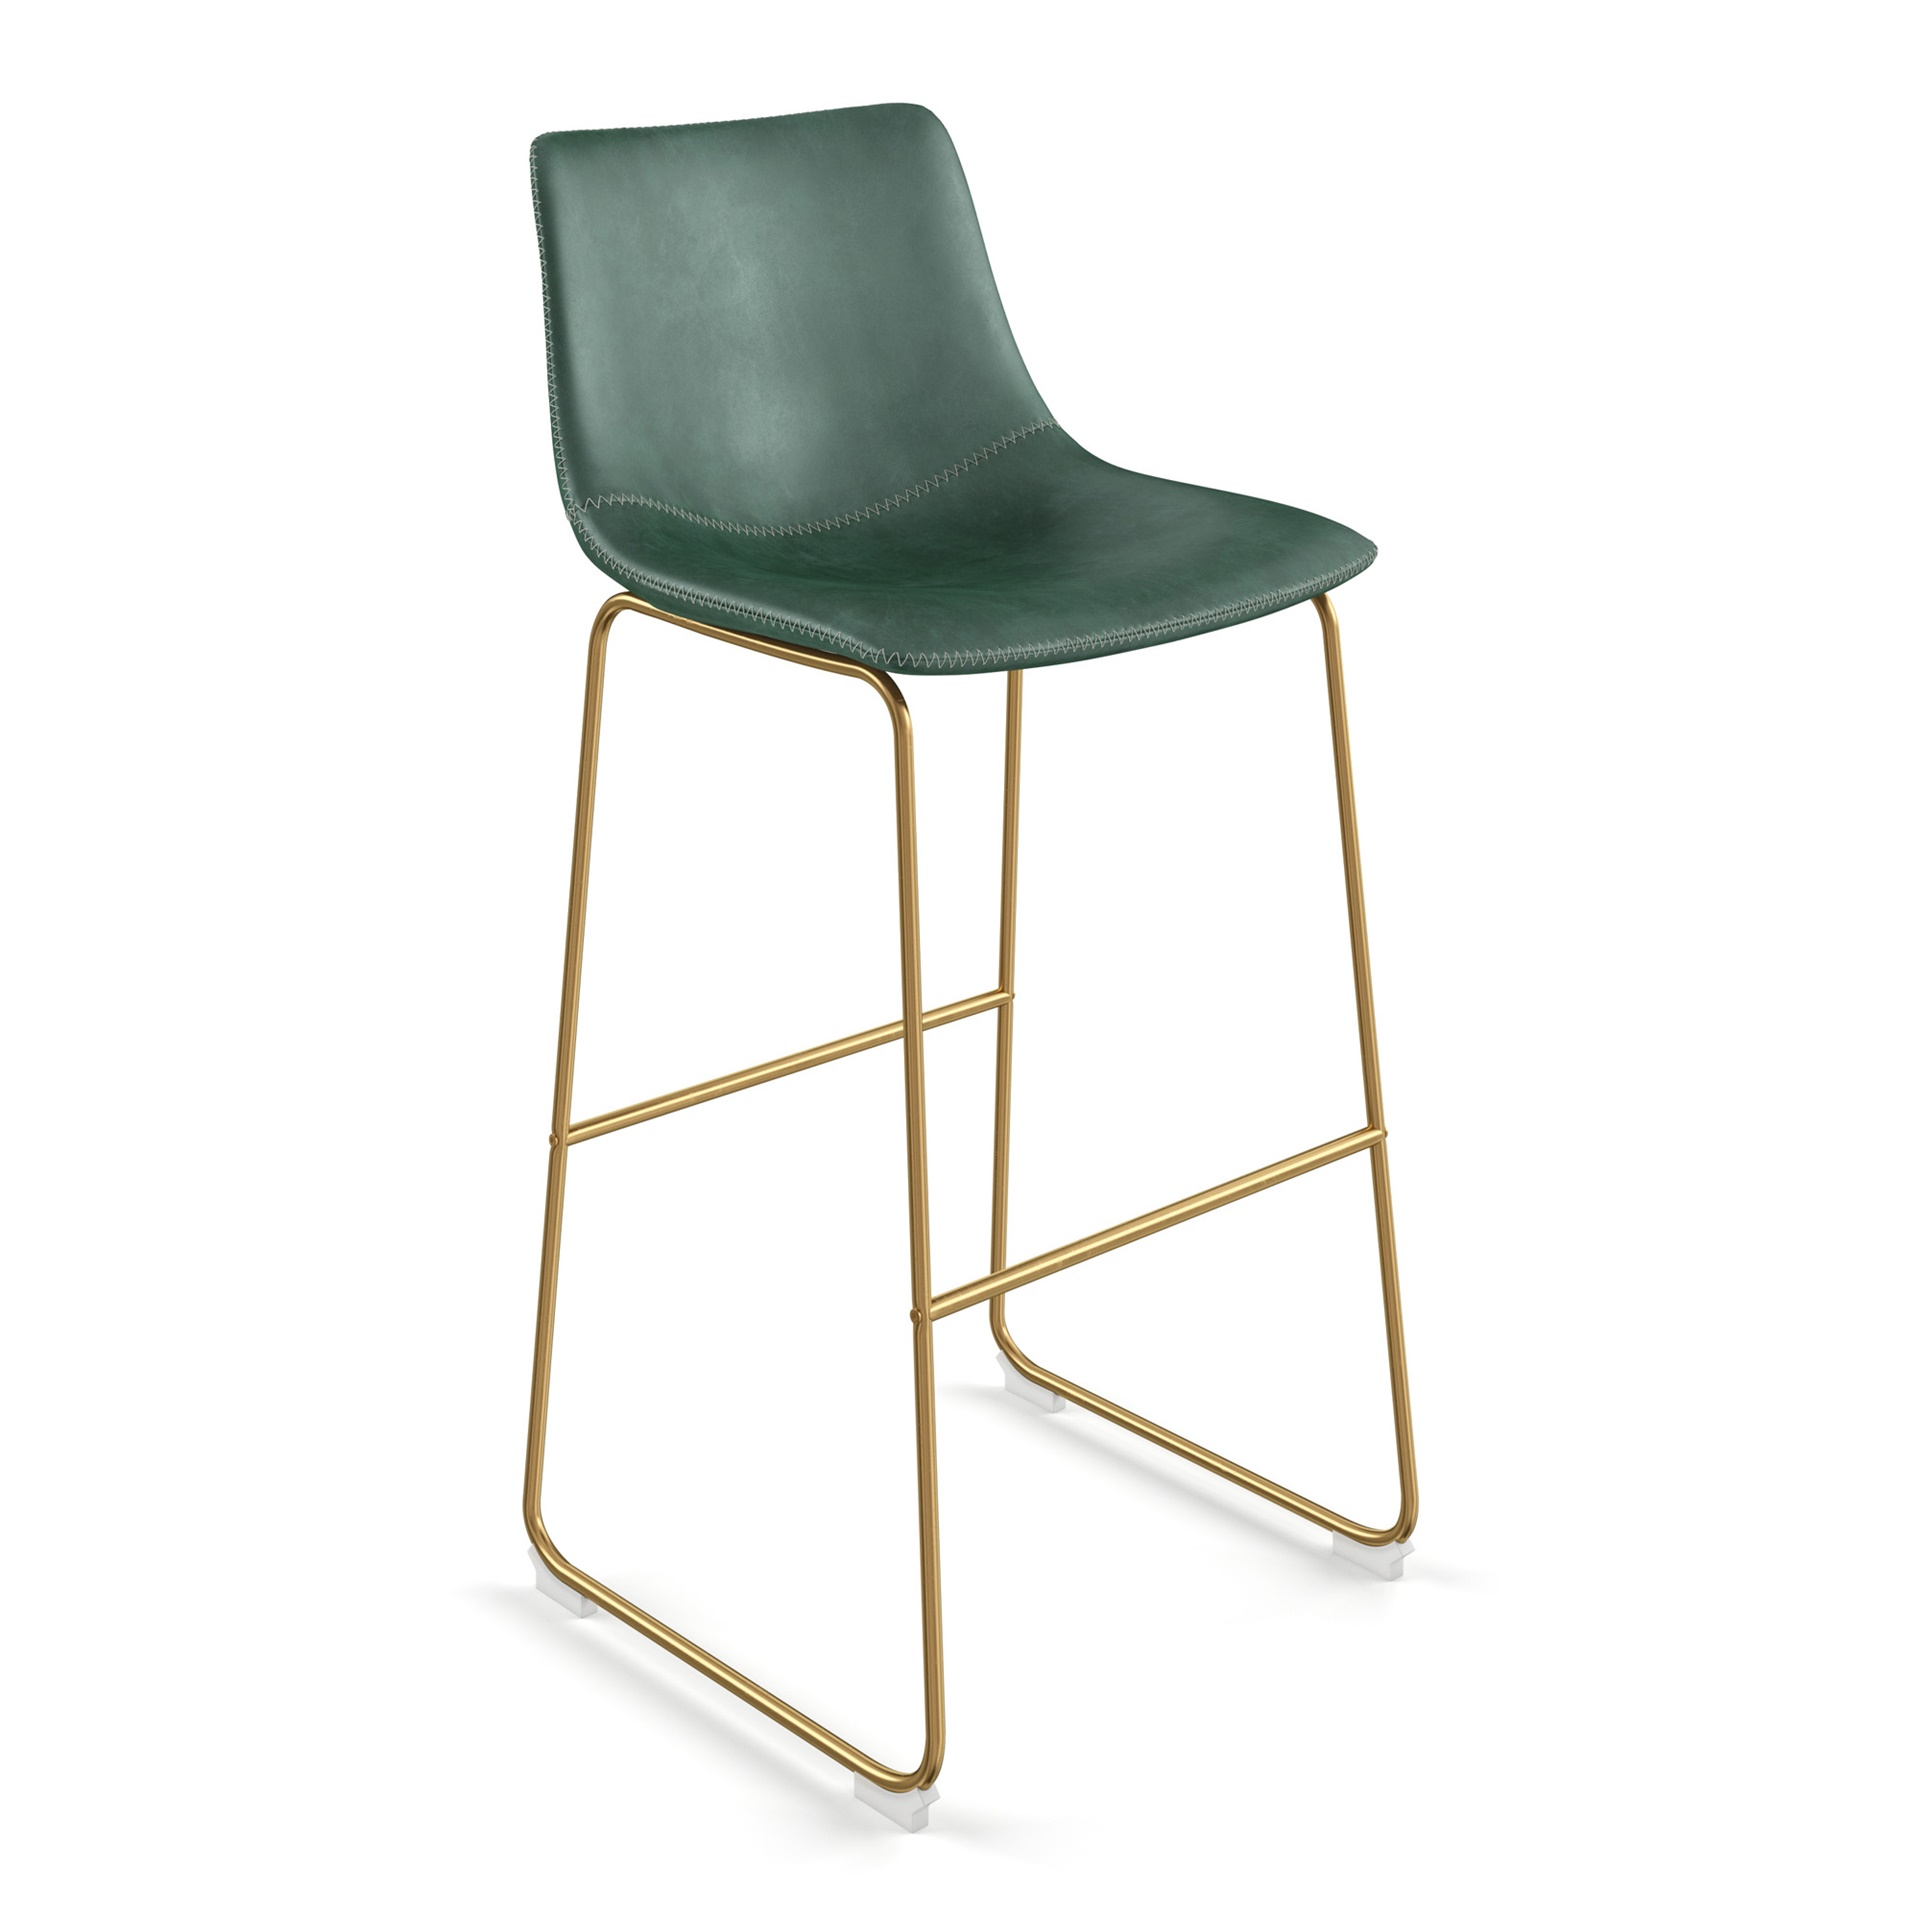 Astounding Kiersten Bar Stool Gmtry Best Dining Table And Chair Ideas Images Gmtryco